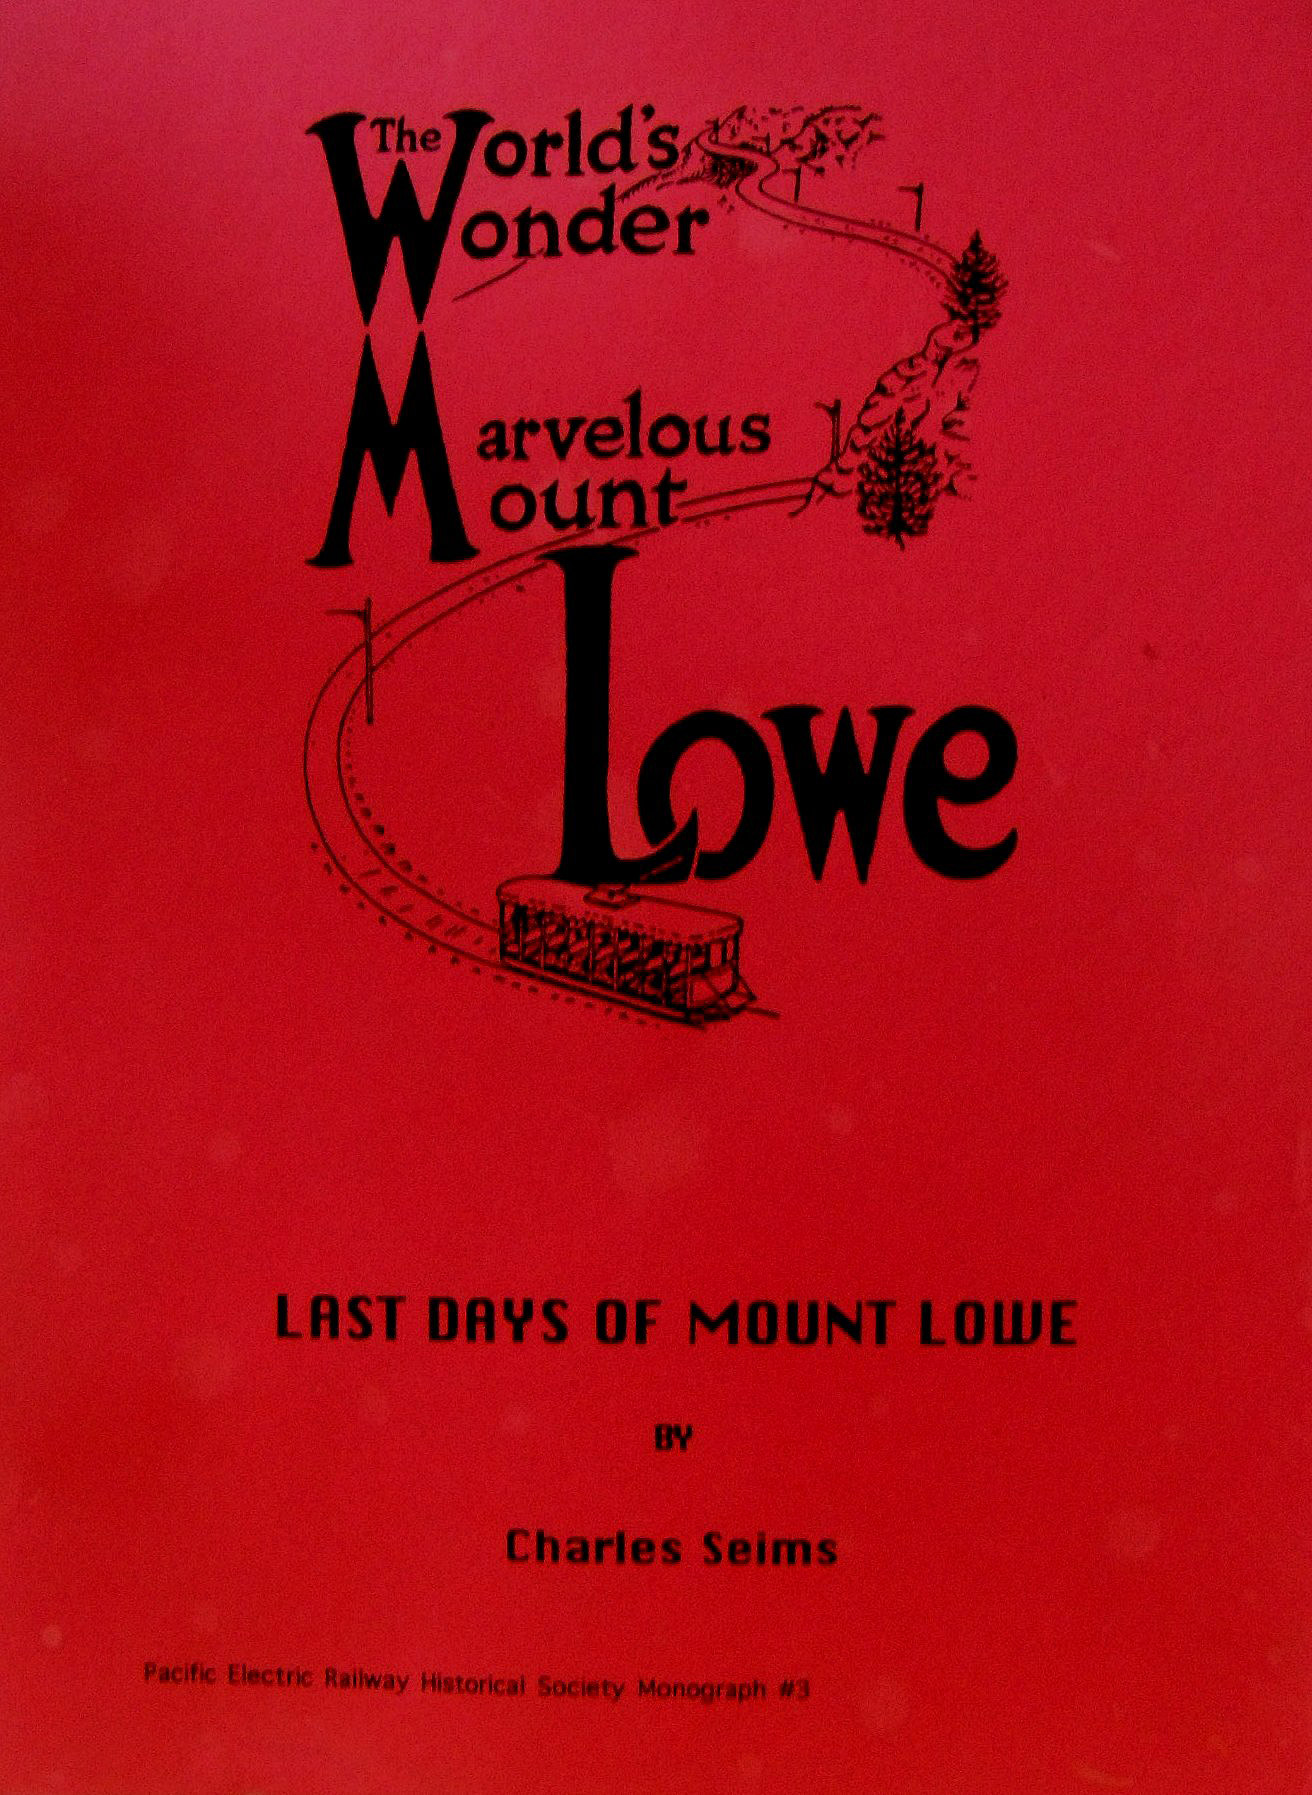 Monograph #3: Charles Seims: Last Days of Mount Lowe